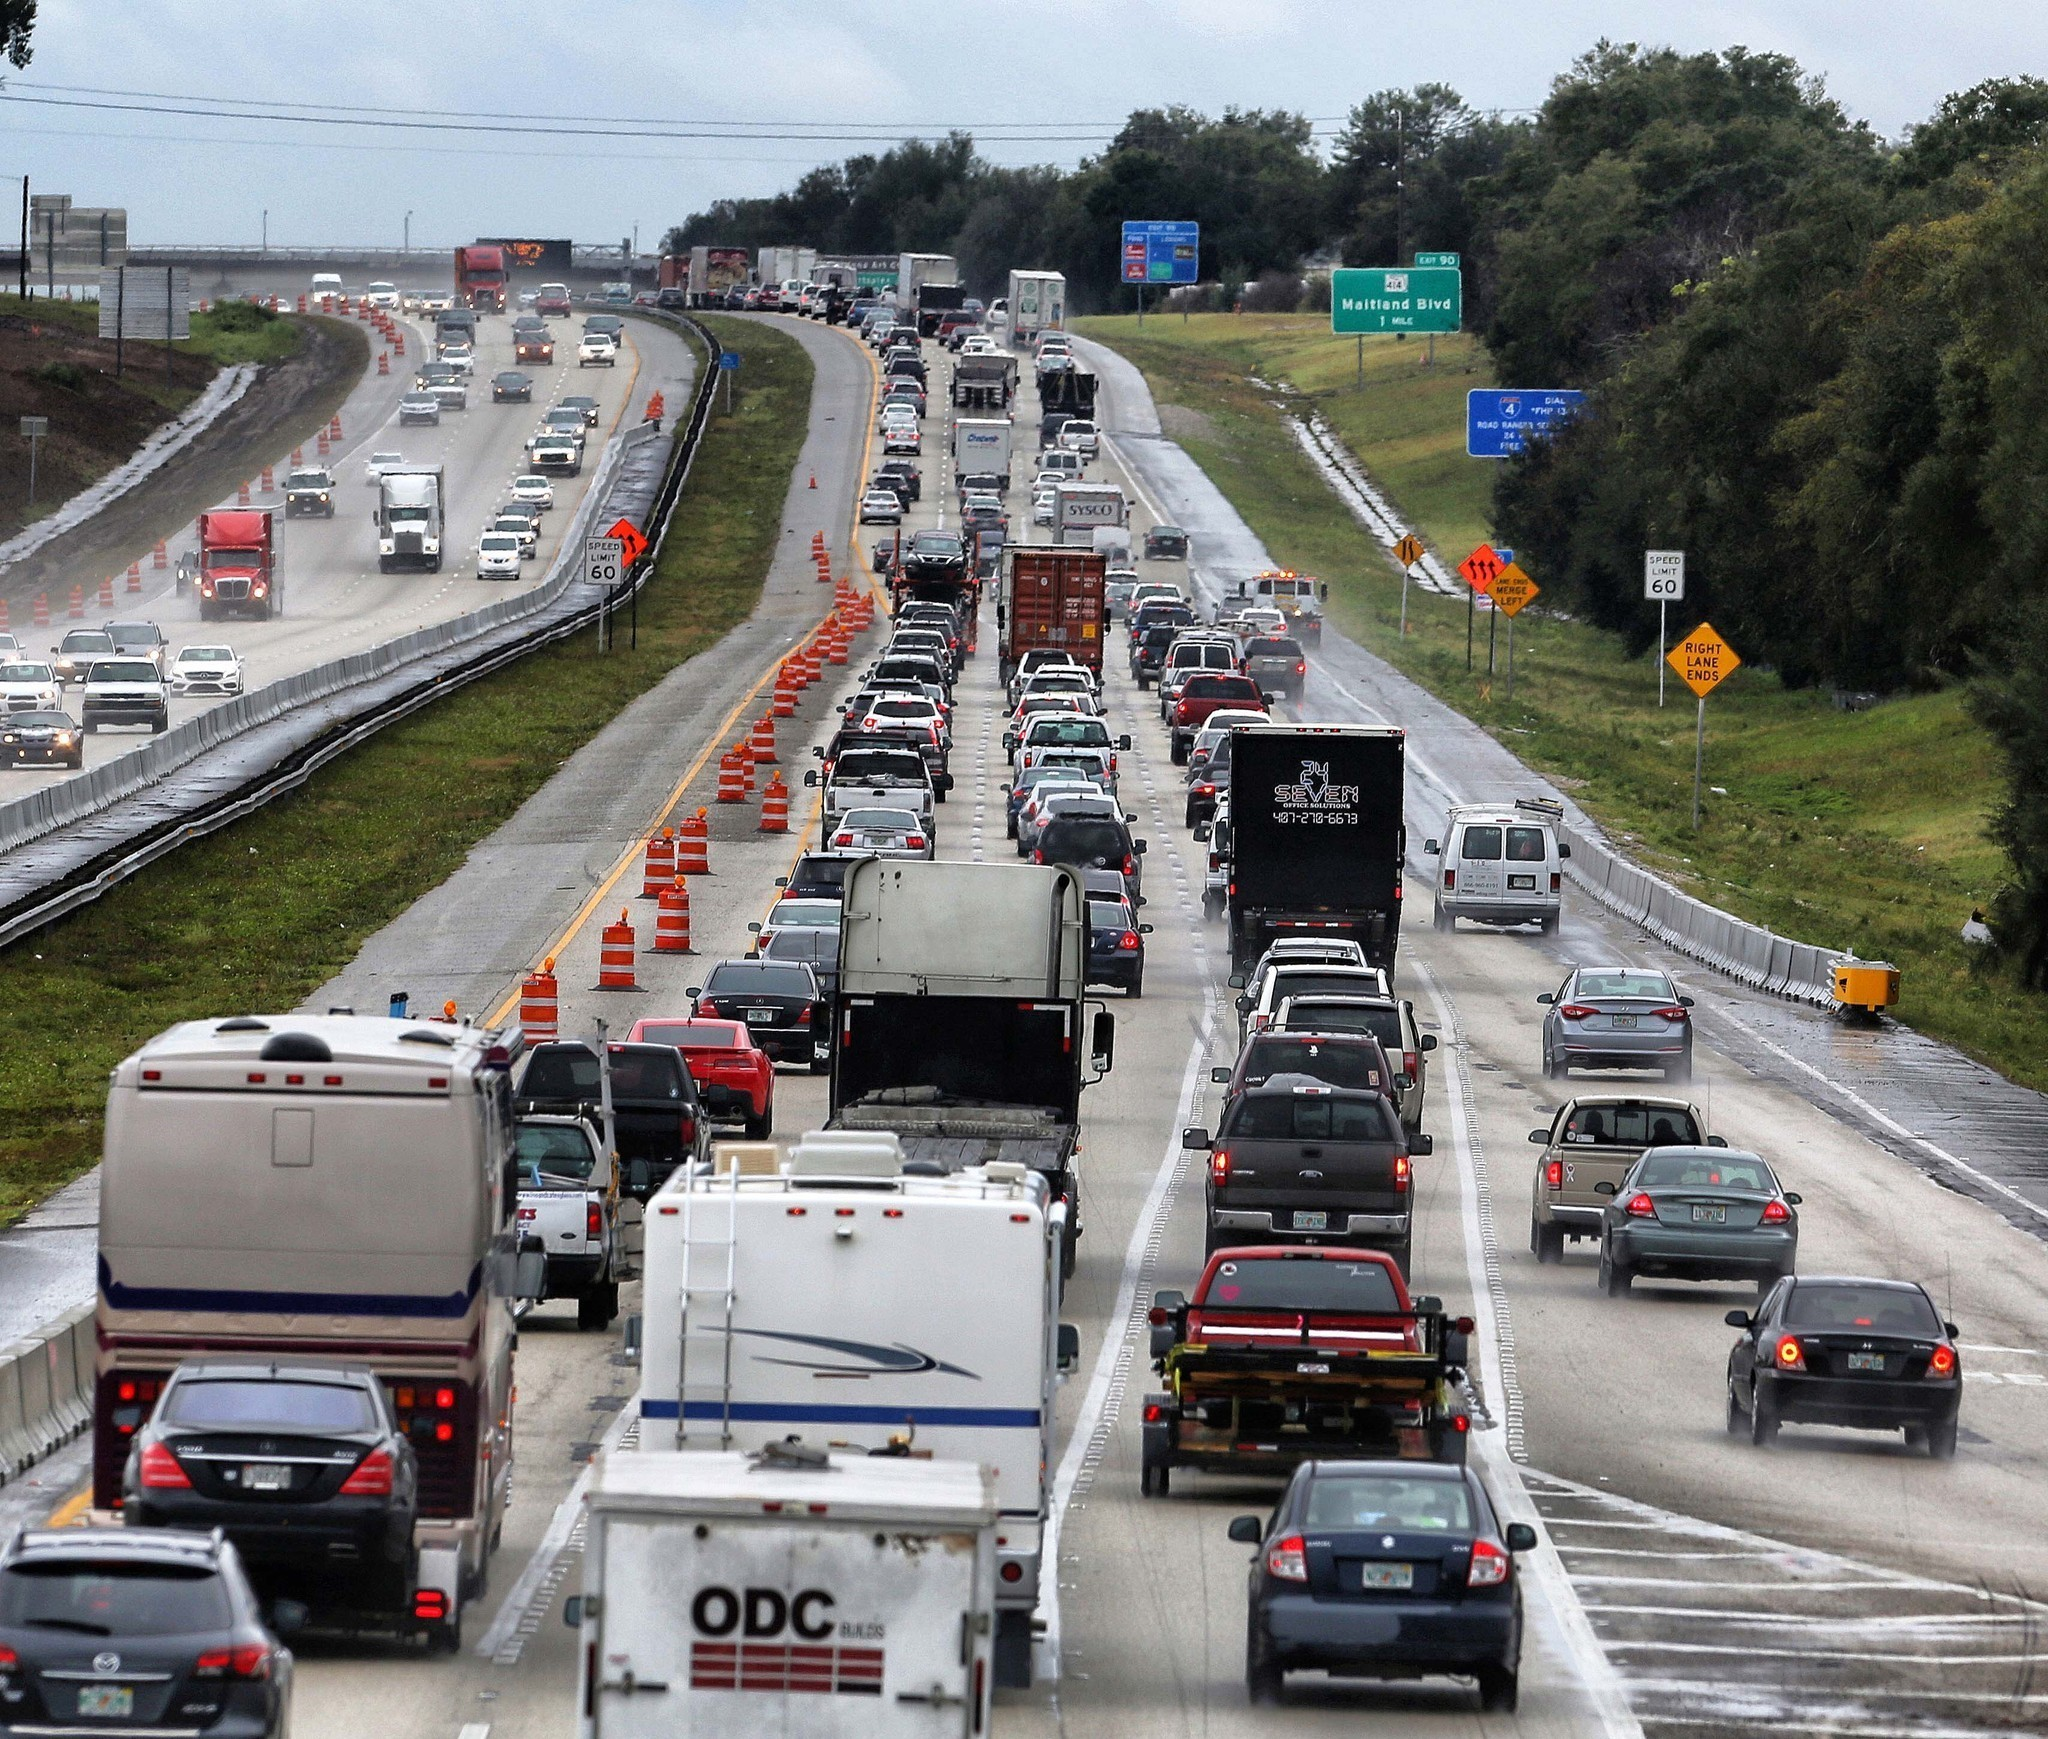 Gas Prices Orlando >> I-4 most dangerous interstate? Maybe not - Orlando Sentinel